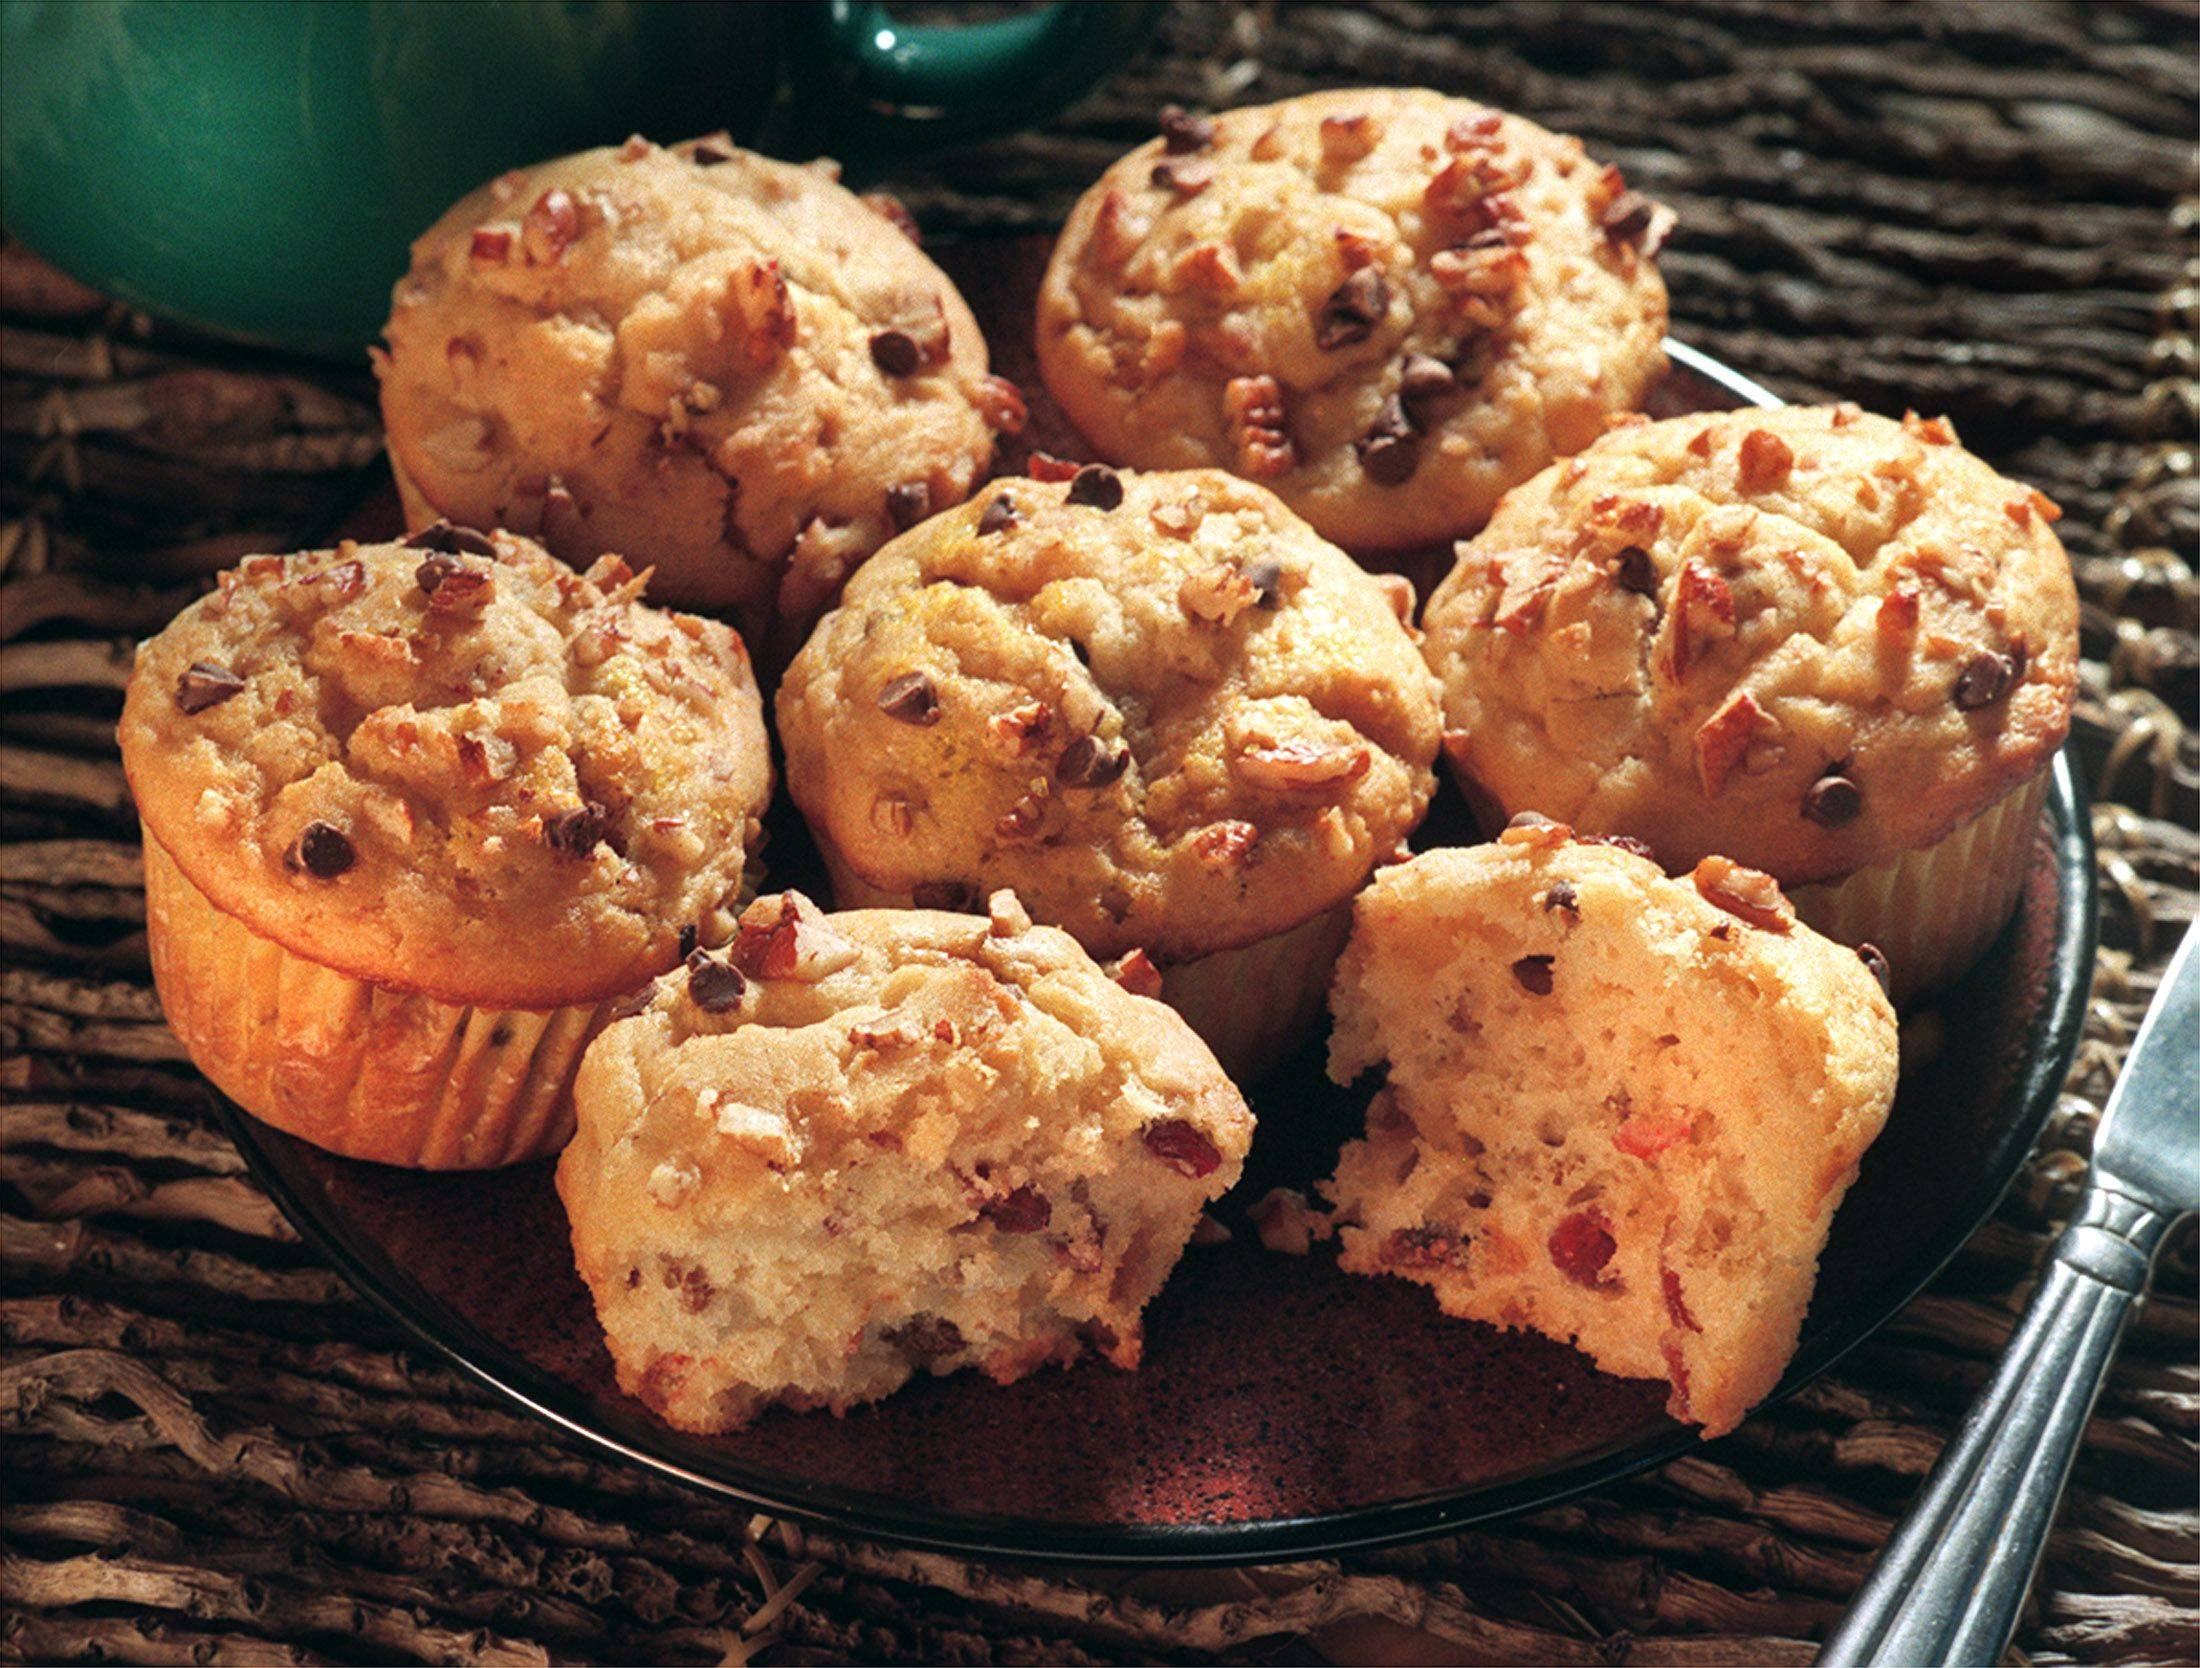 Whip up a batch of Pantry Muffins and clear the shelves of ingredients leftover from holiday baking.